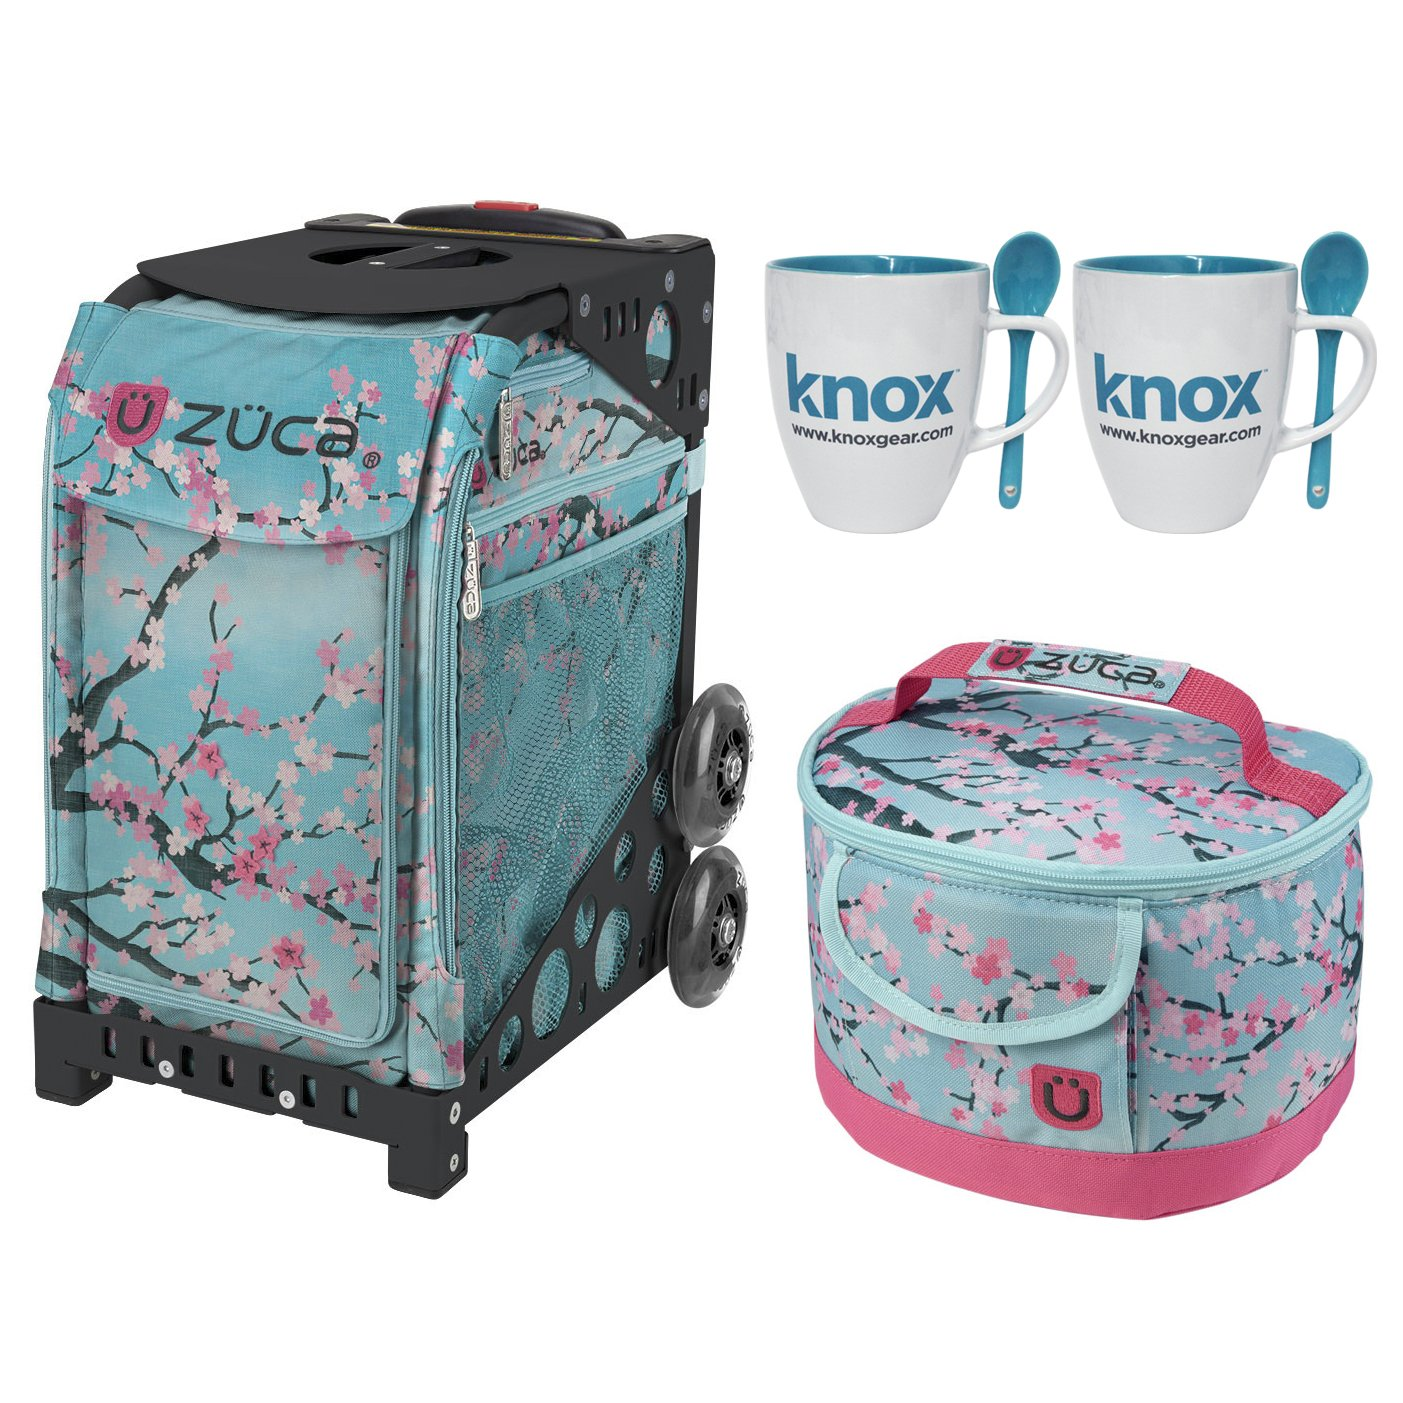 Zuca Hanami Sport Insert Bag with Zuca Frame, Matching Lunch box and 2 Coffee Mugs (Black Frame)